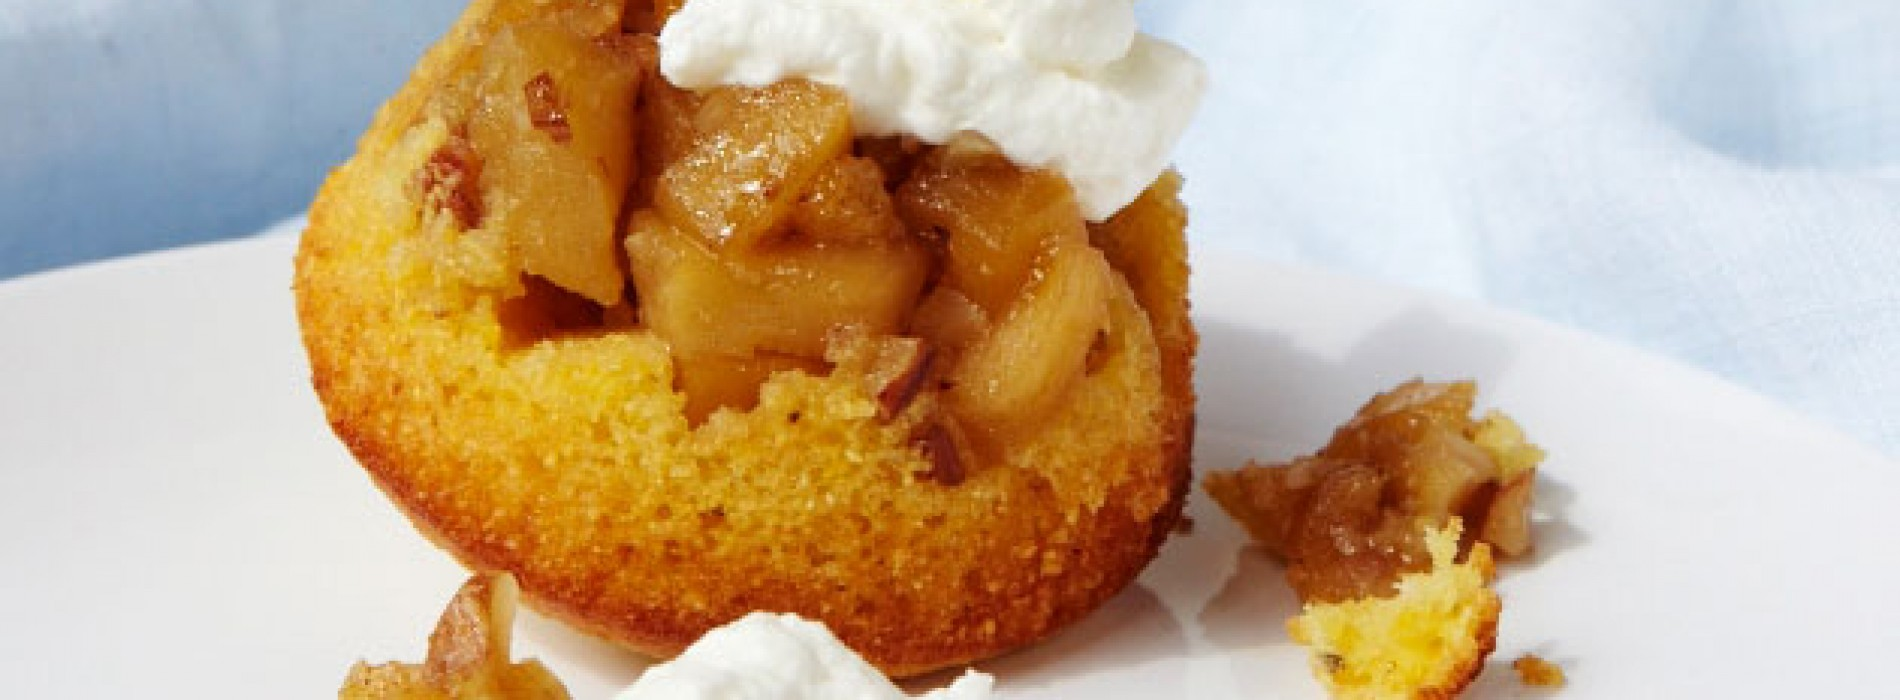 Apple Upside Down Cornmeal Cakes